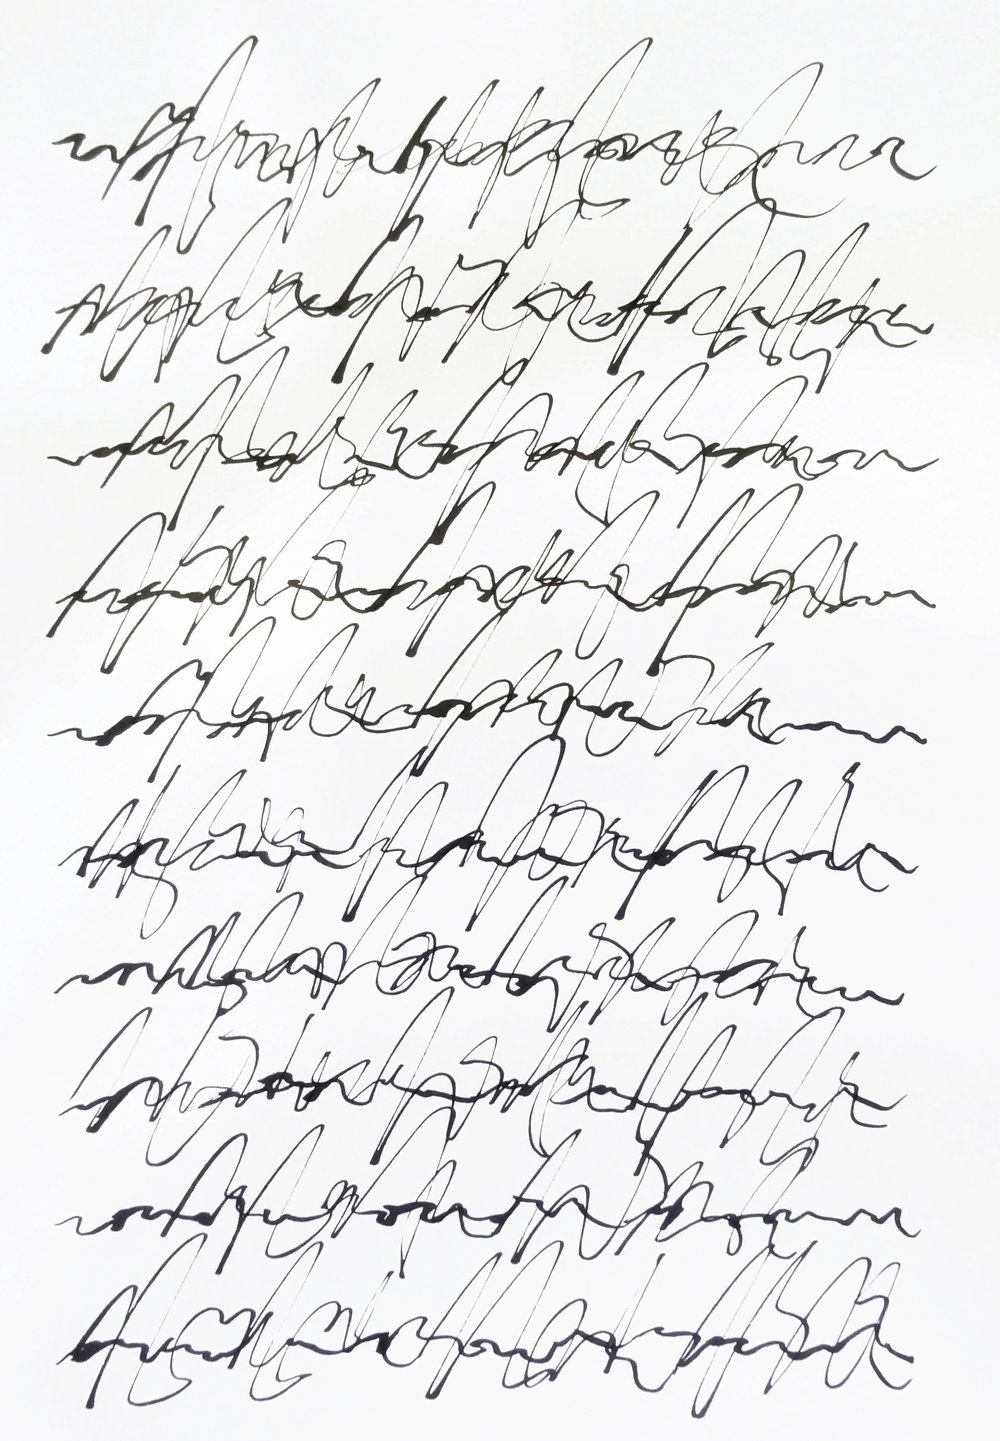 rhythm and flow studies, 2019 calligraphy ink on paper 42,0 x 29,7 cm (3-19)